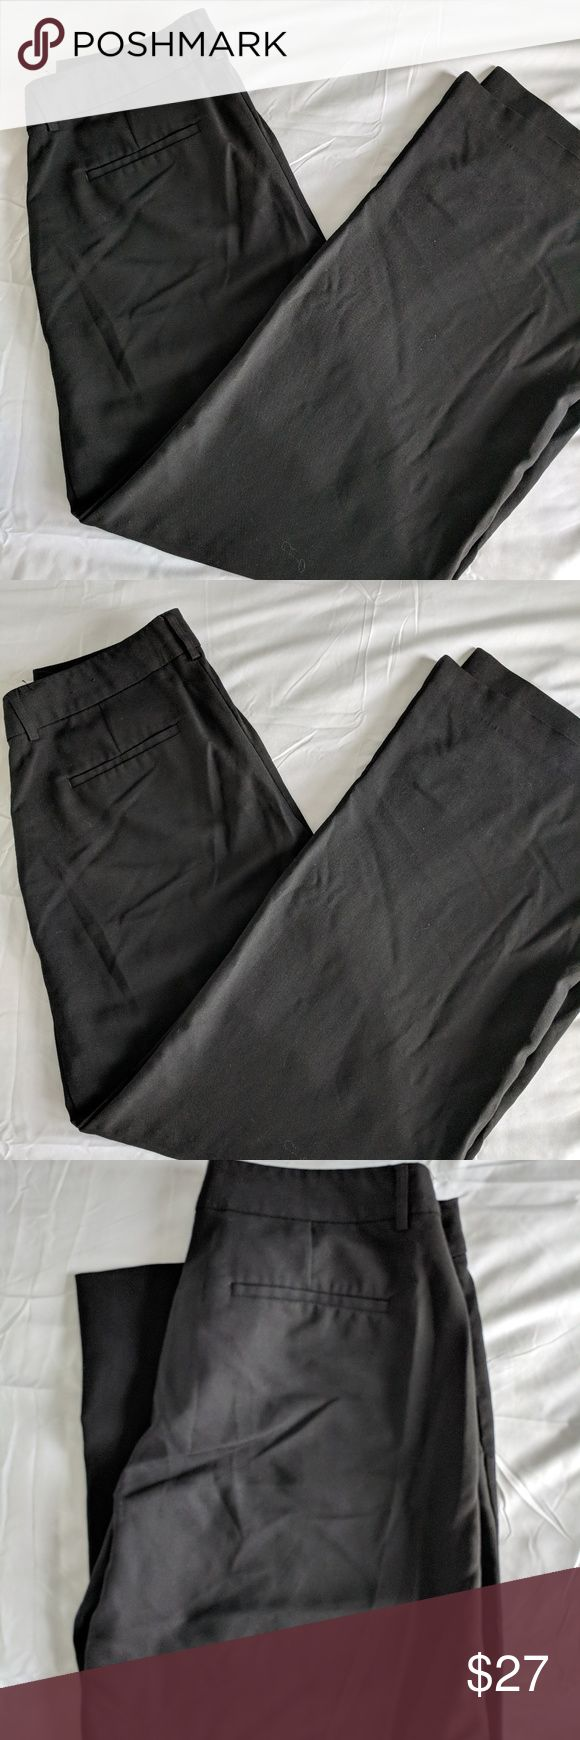 Women's Express Size 10 Black Slacks Women's straight leg slacks. size 10. pocket on back, small pockets on front. Has belt loops.   Brand: Express Size: 10 Color: black Condition: Previously loved.   Bundle Discounts and reasonable offers accepted, just ask..  Thank you for browsing! Express Pants Trousers